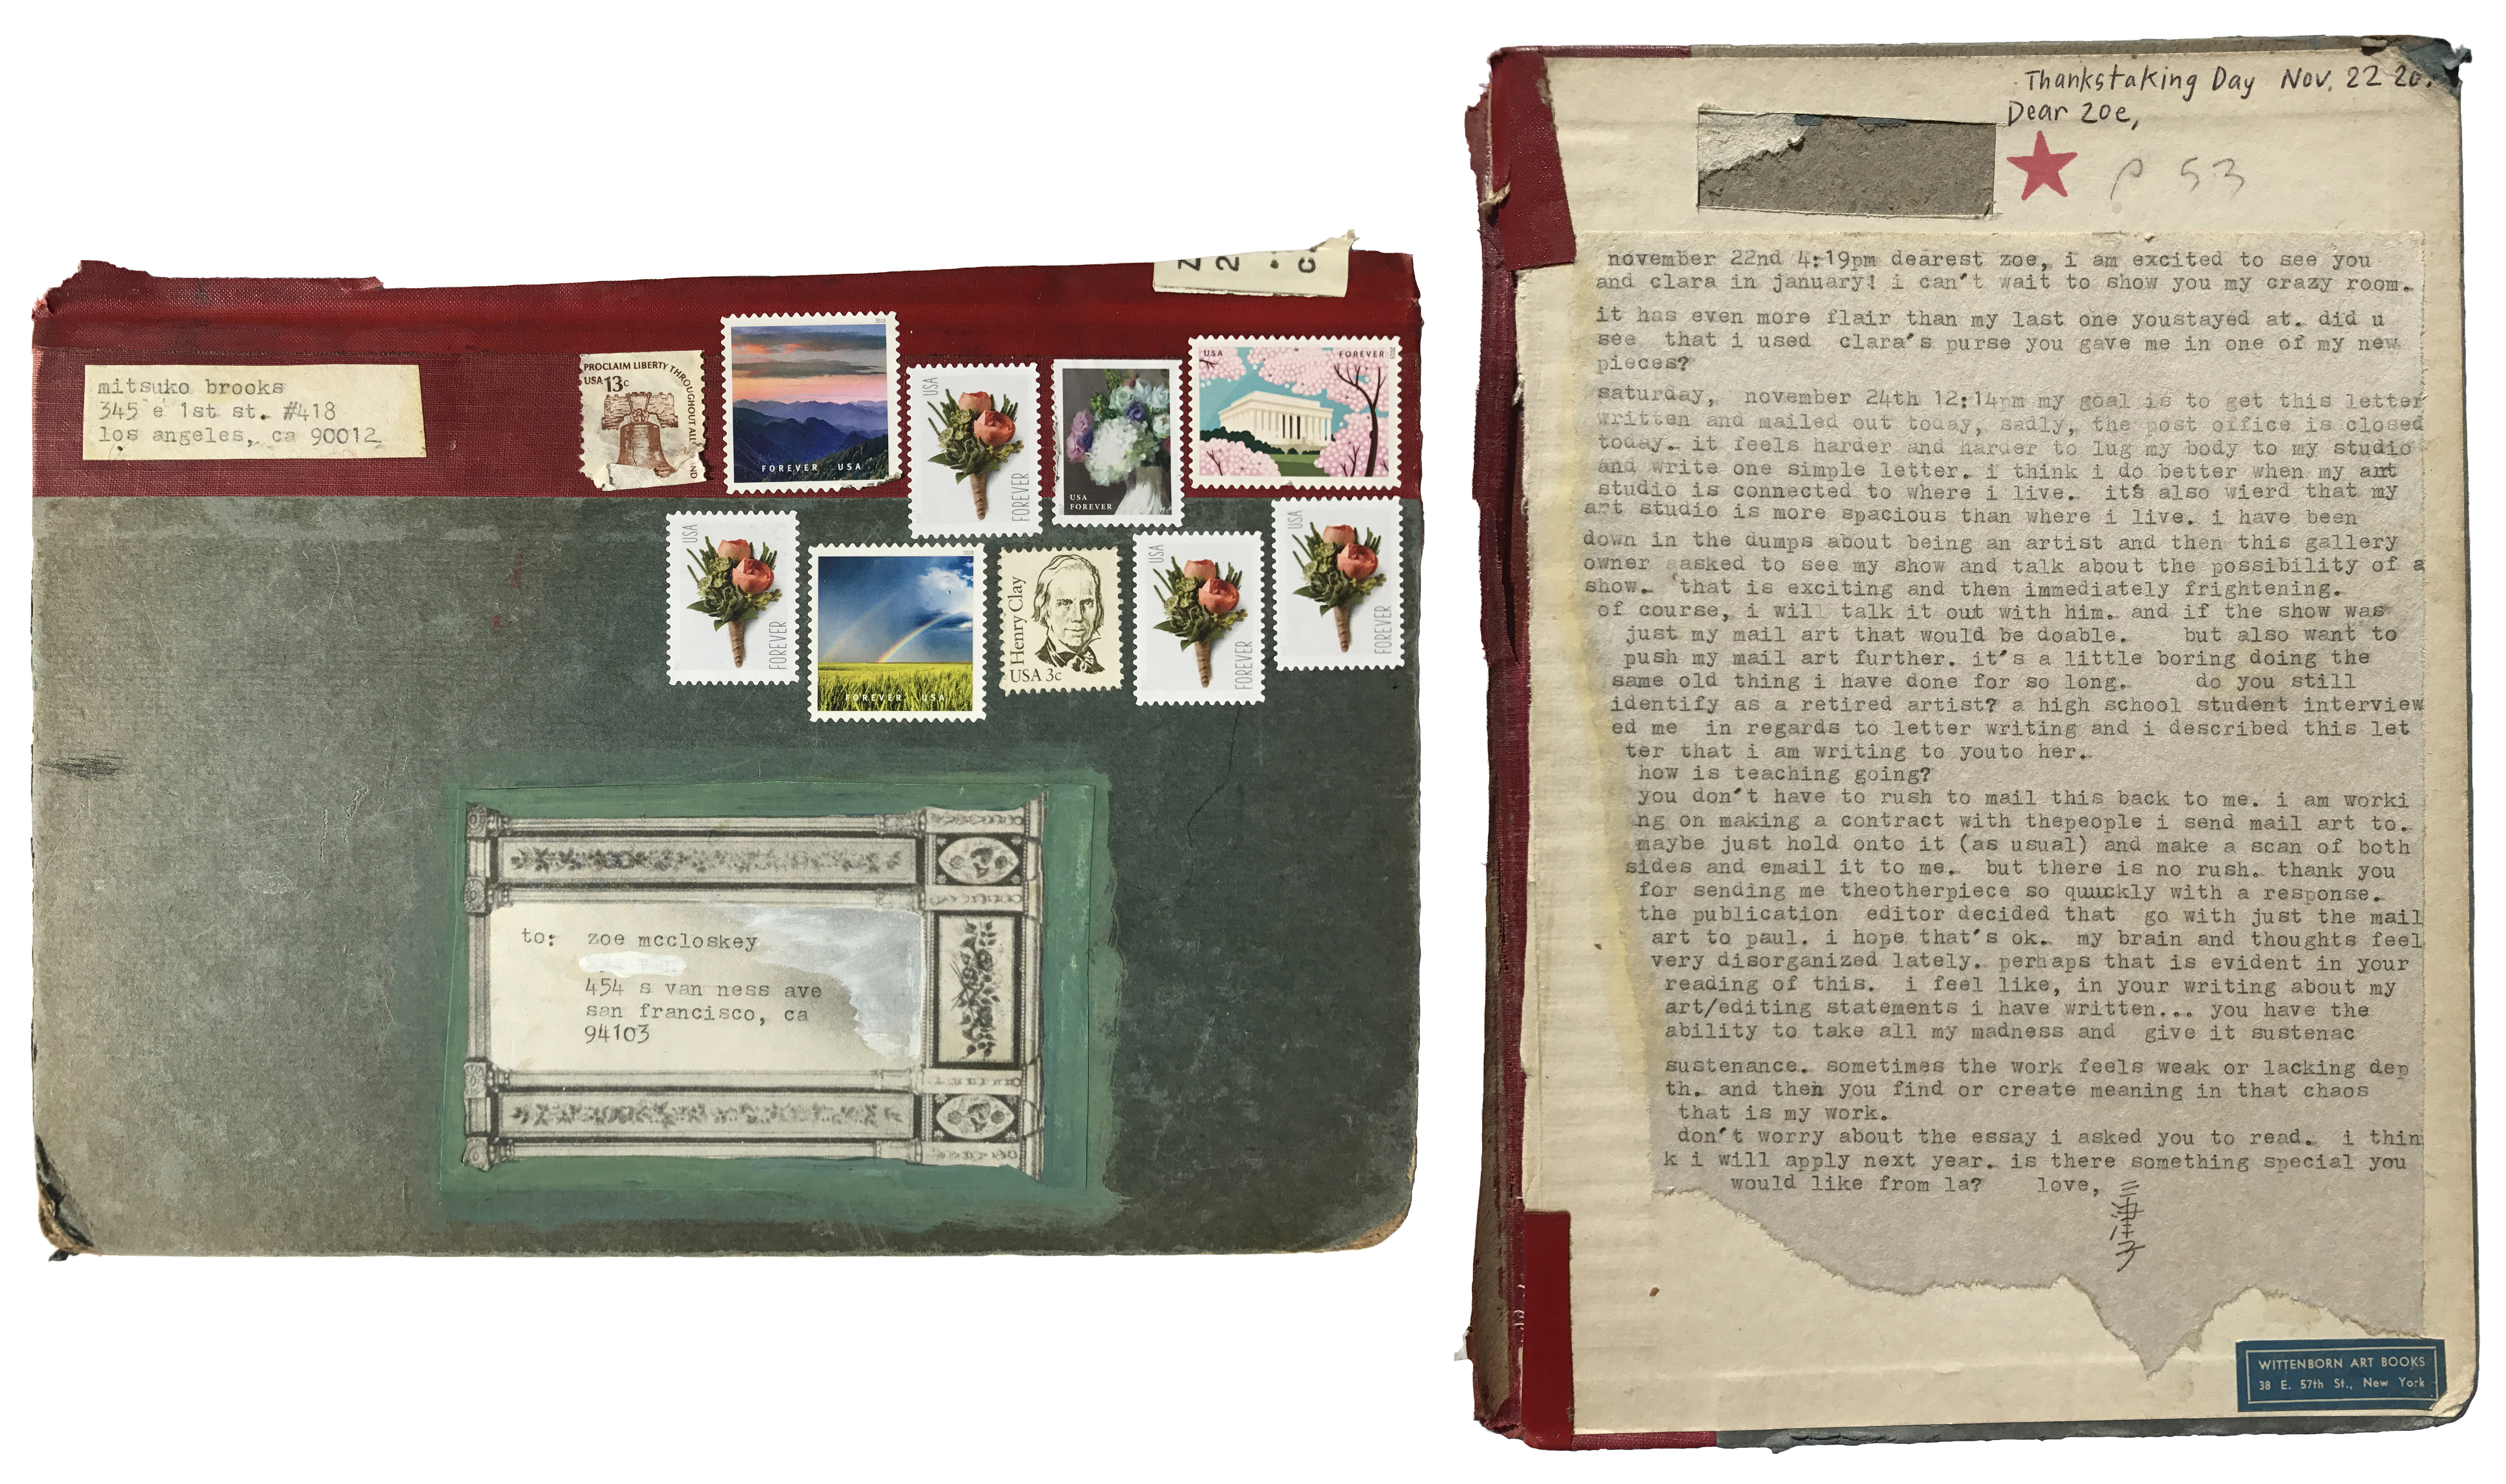 Mitsuko Brooks. <em>Mail to Z.M., Nov. 22, 2018</em>, 2018. Ink, postage stamps, and paper collaged onto detached book cover, 9 7/8 x 7 1/4 inches (25 x 18 cm)